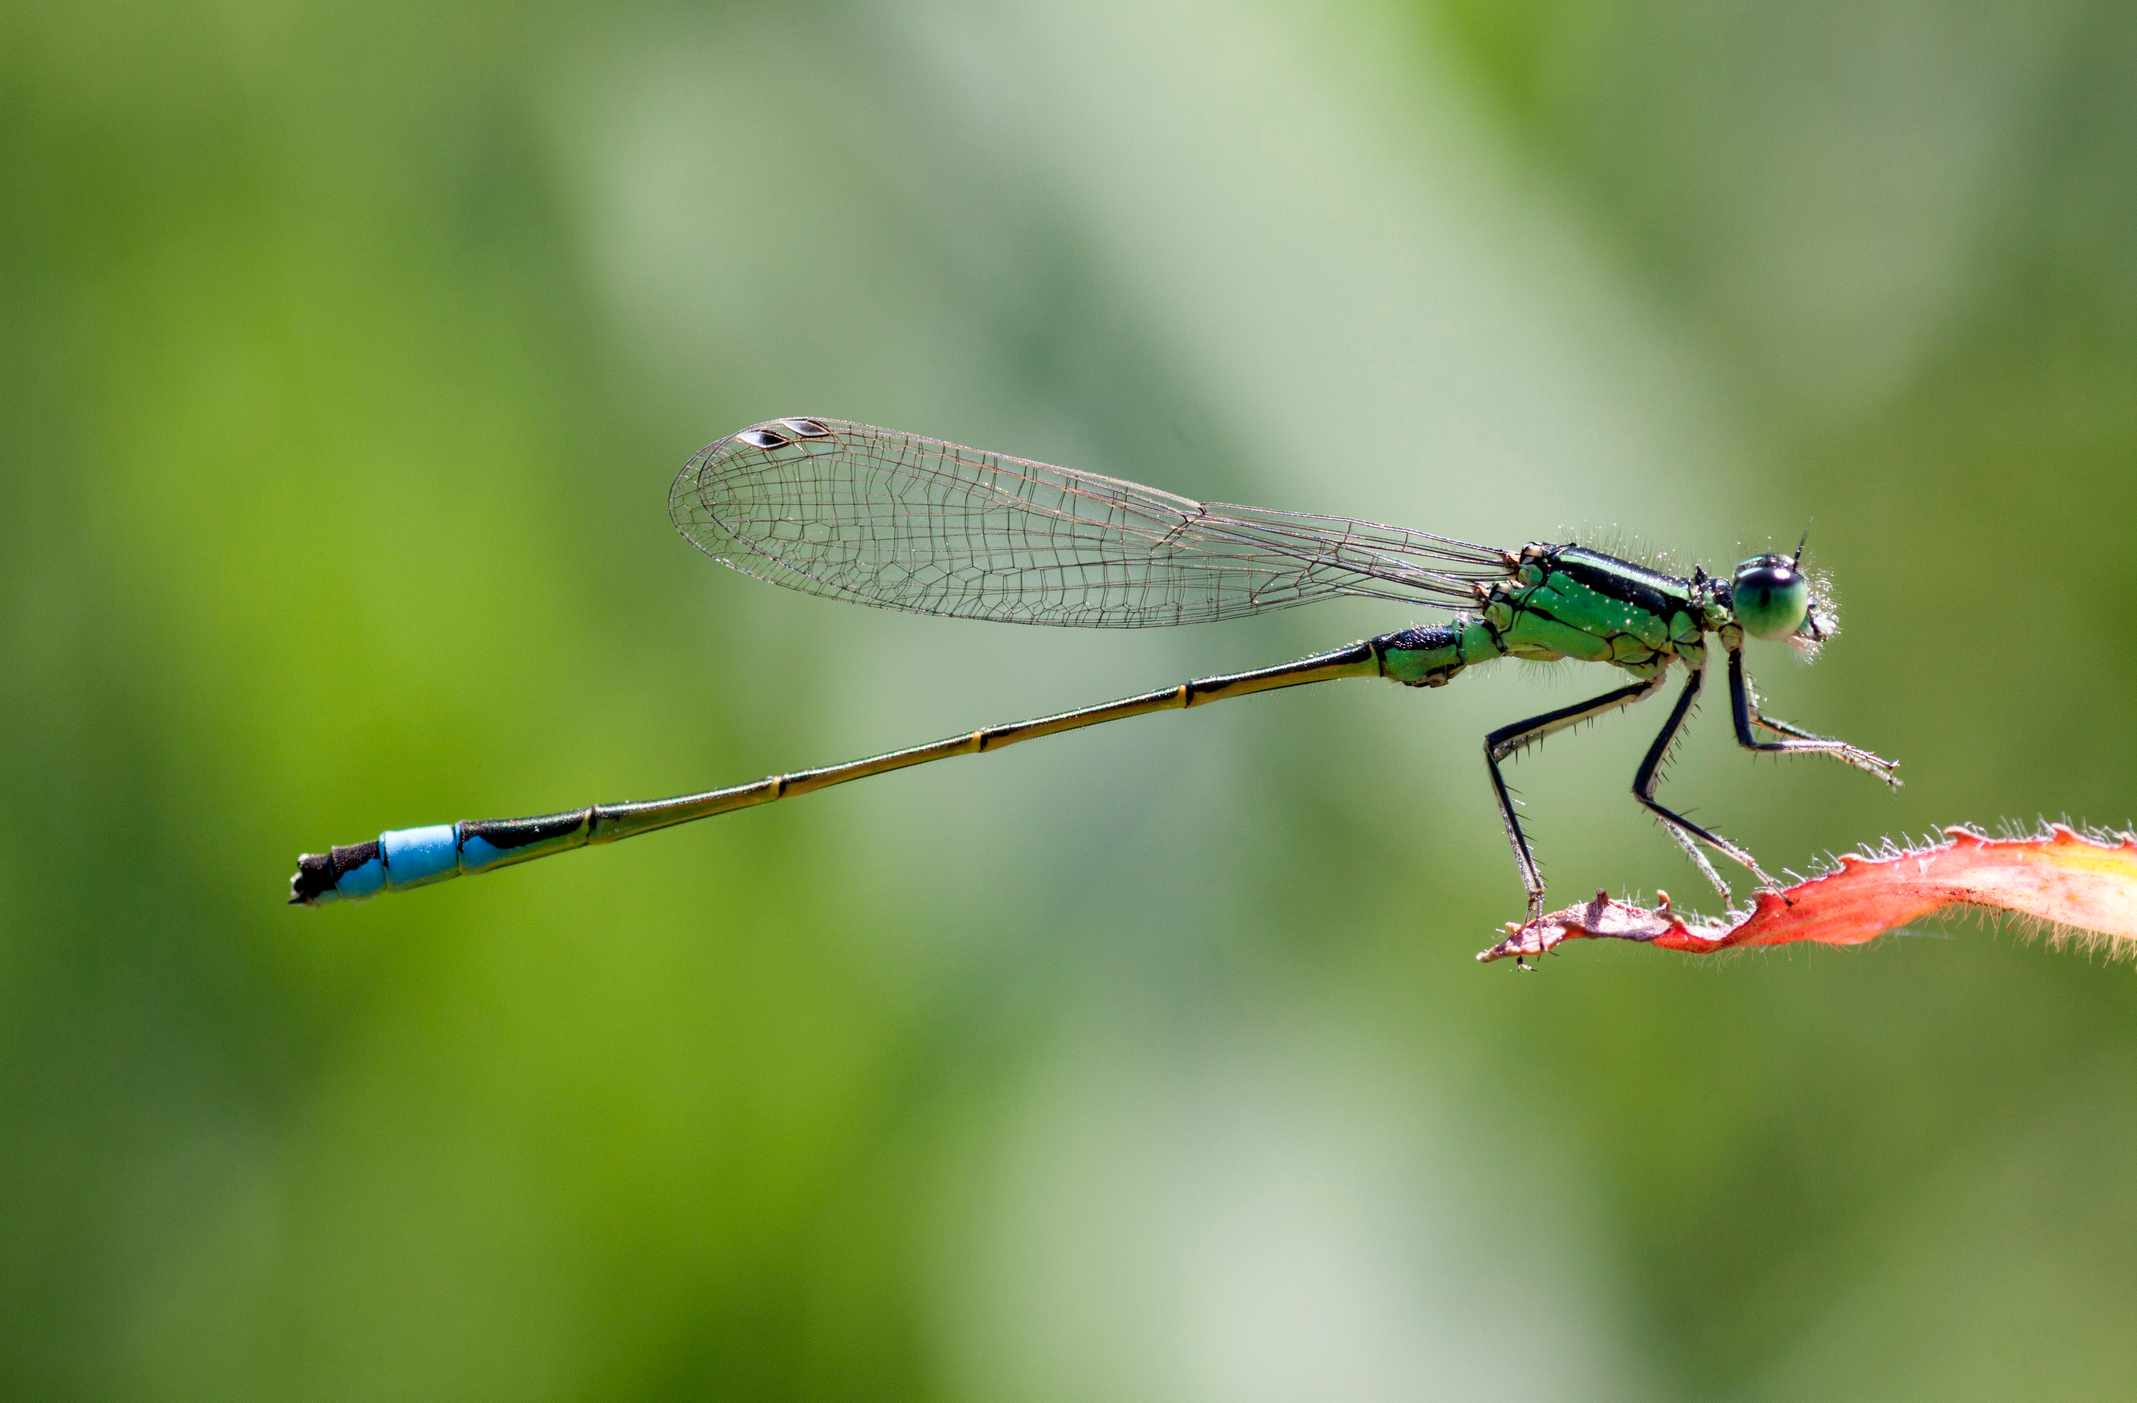 Blue-tailed damselfly. © Mauvries/Getty